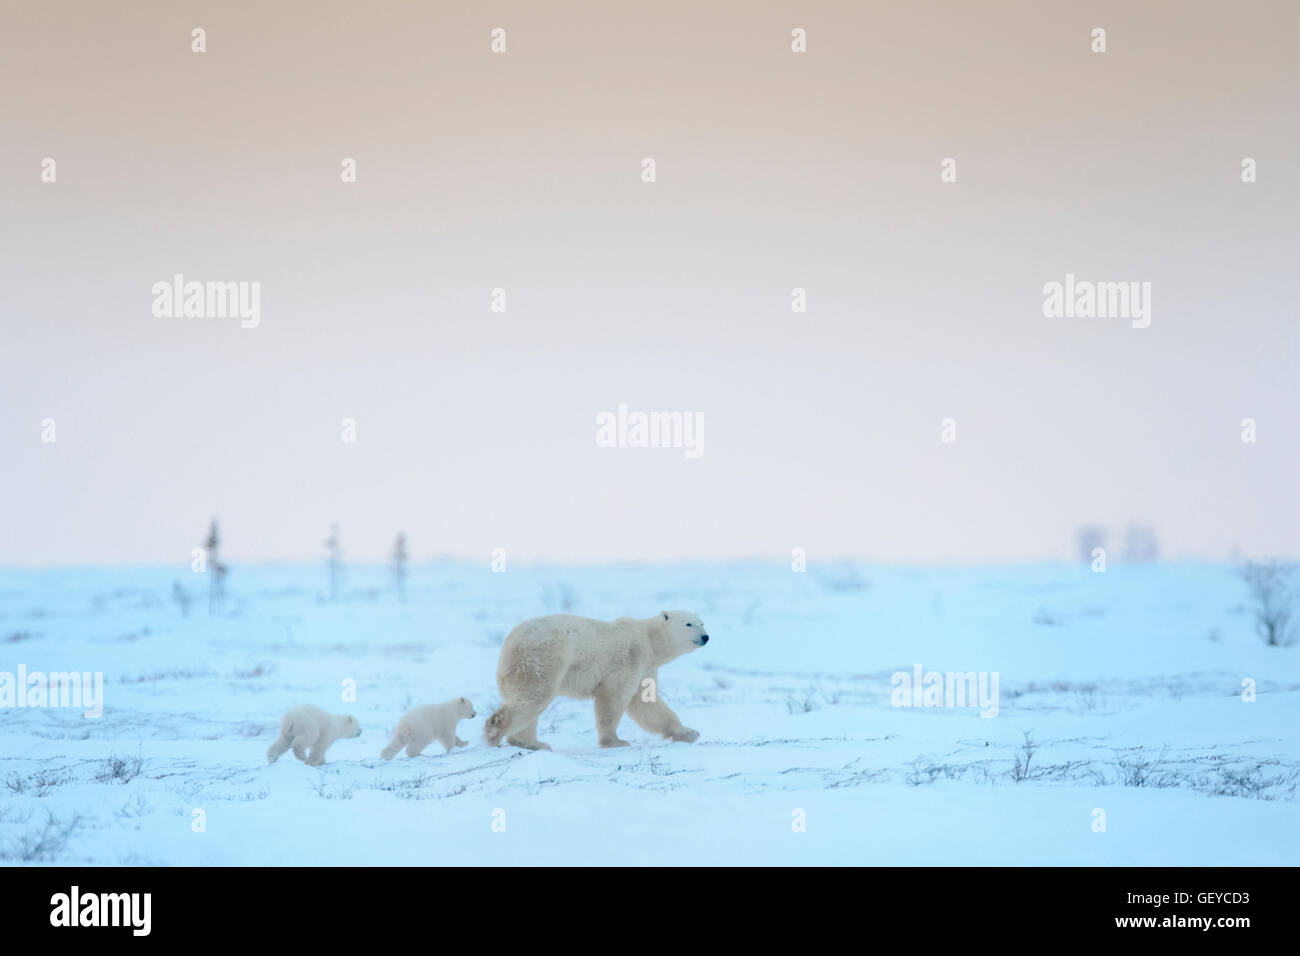 Polar bear mother (Ursus maritimus) with two cubs walking on tundra at dusk, Wapusk National Park, Manitoba, Canada - Stock Image